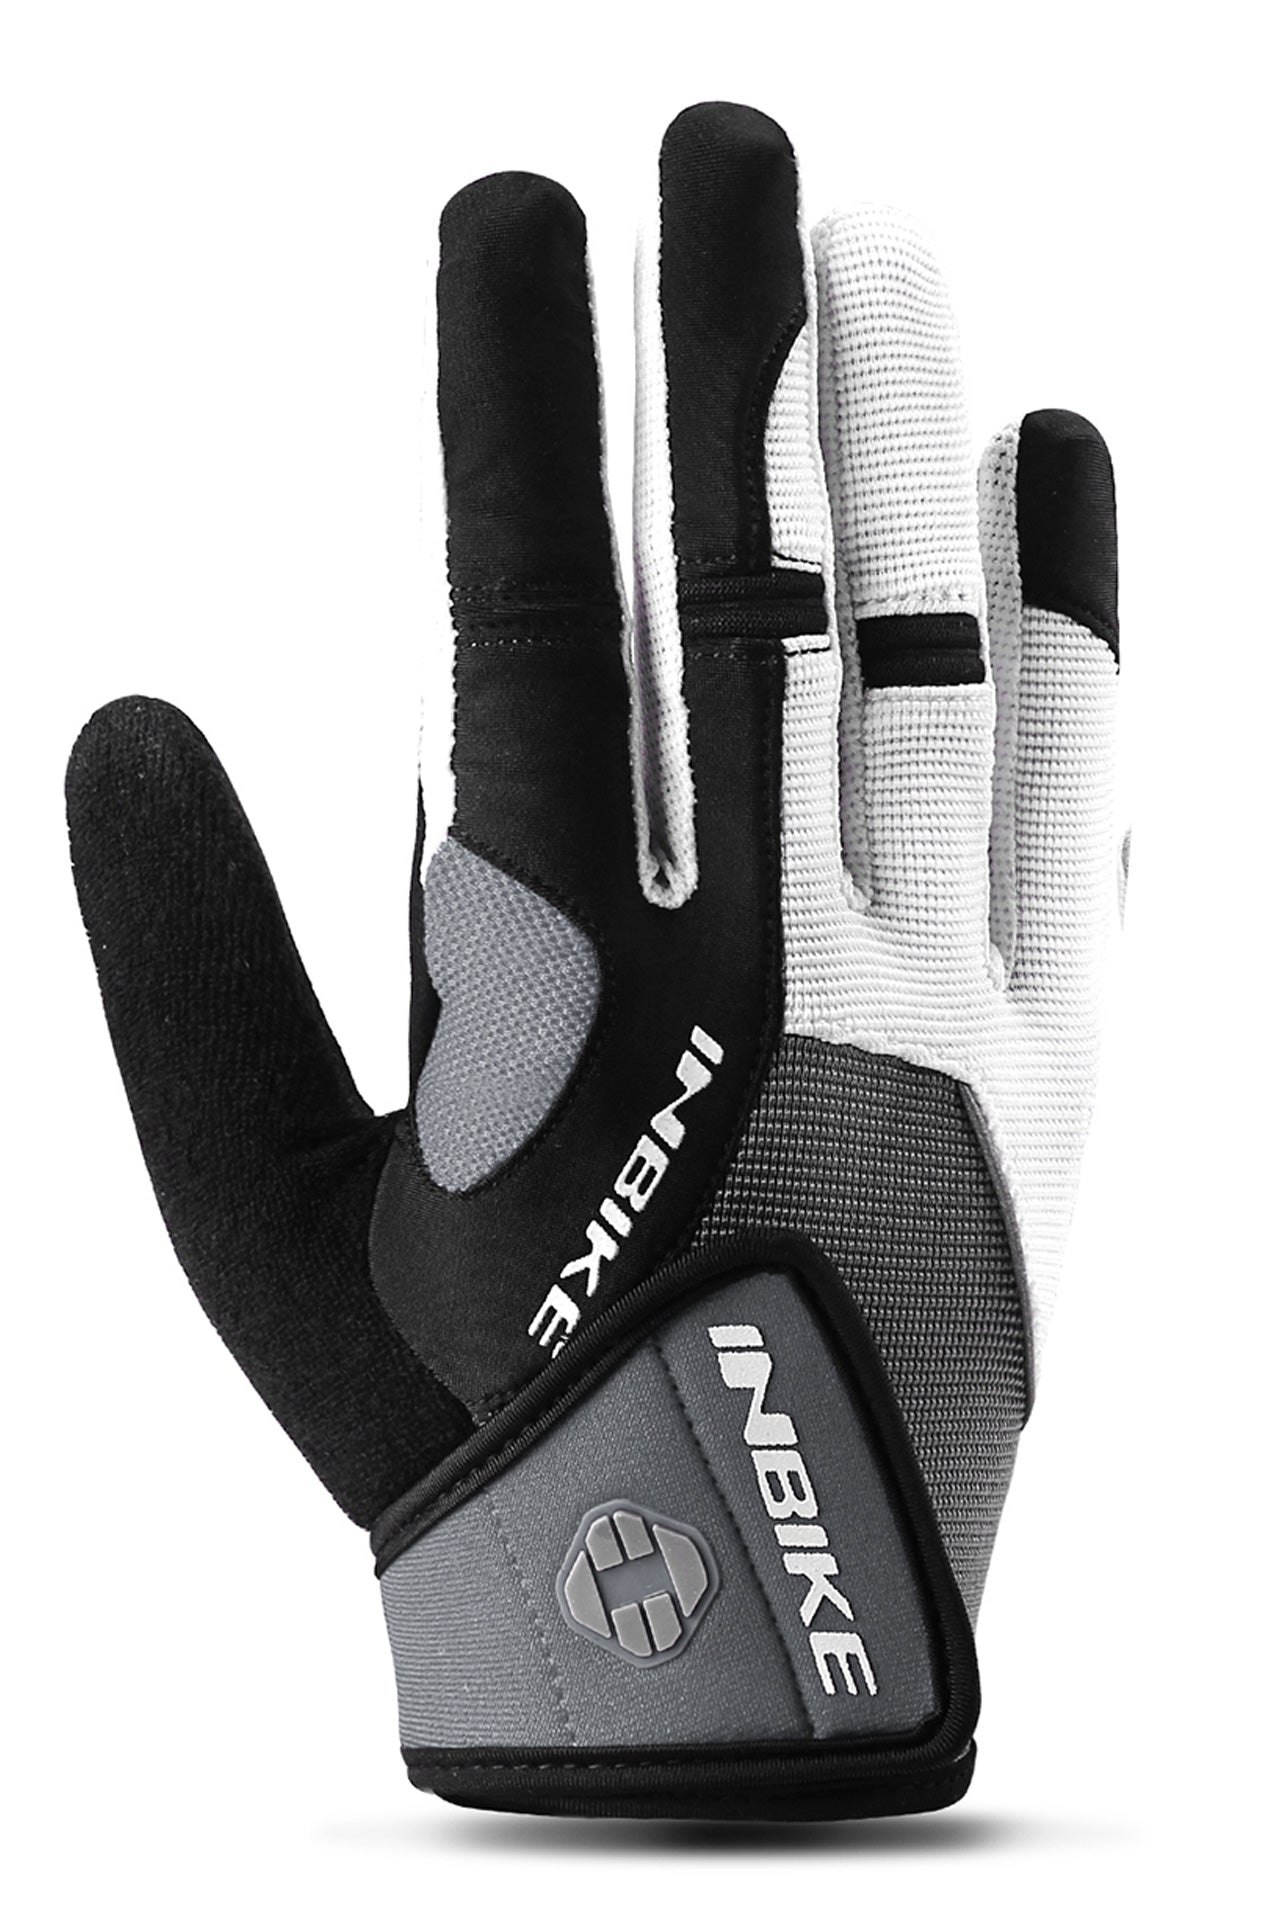 INBIKE Breathable Full Finger Bike Gloves